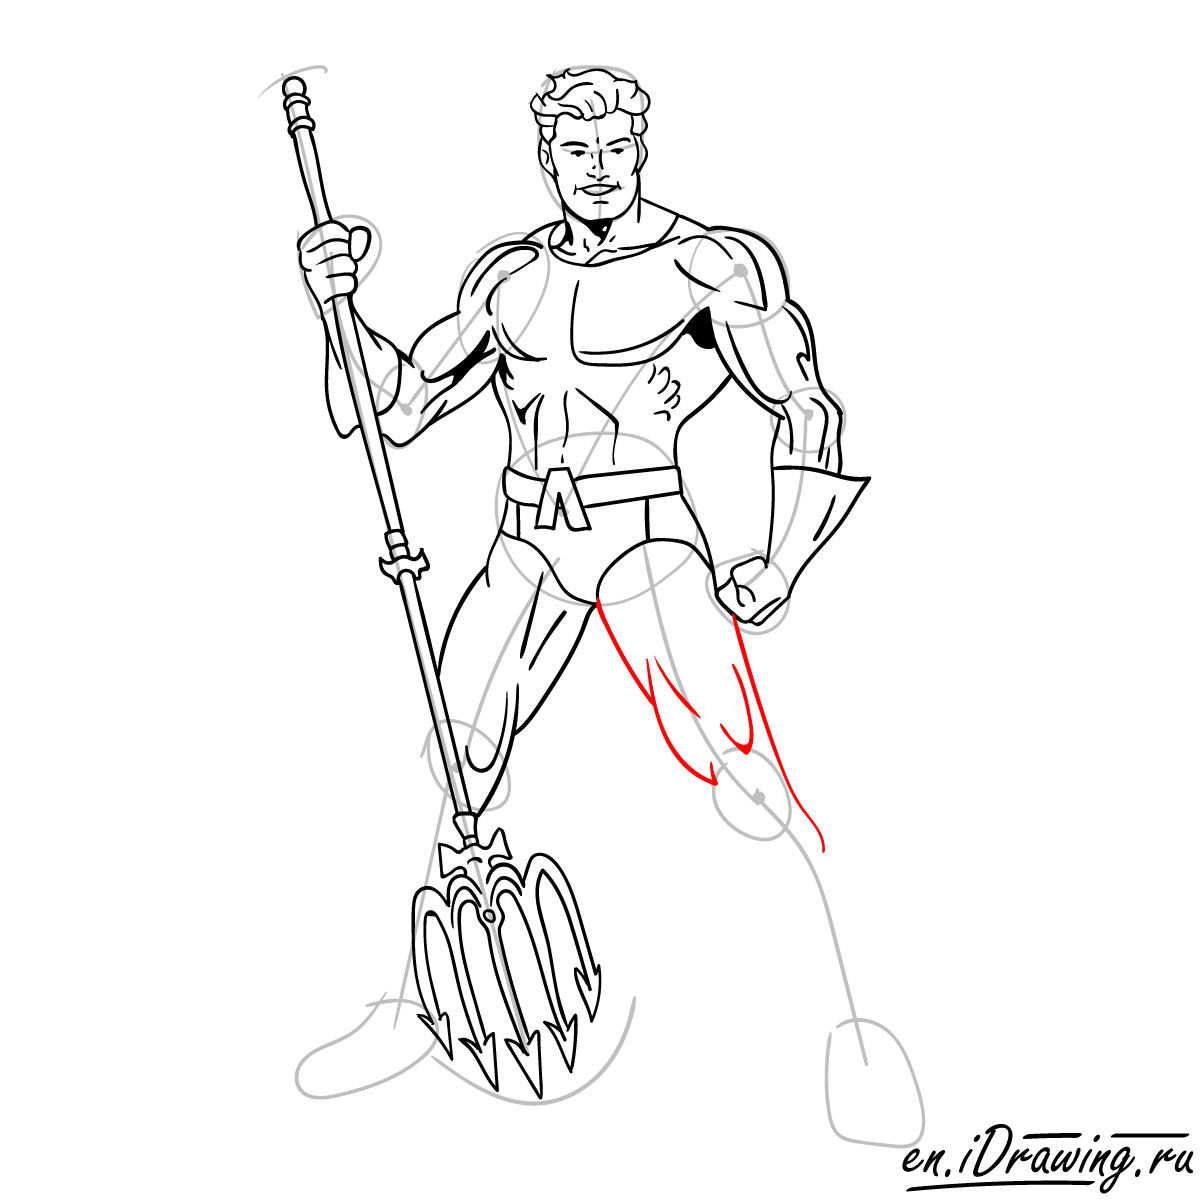 How to draw Aquaman from cartoons and comic books - step 15